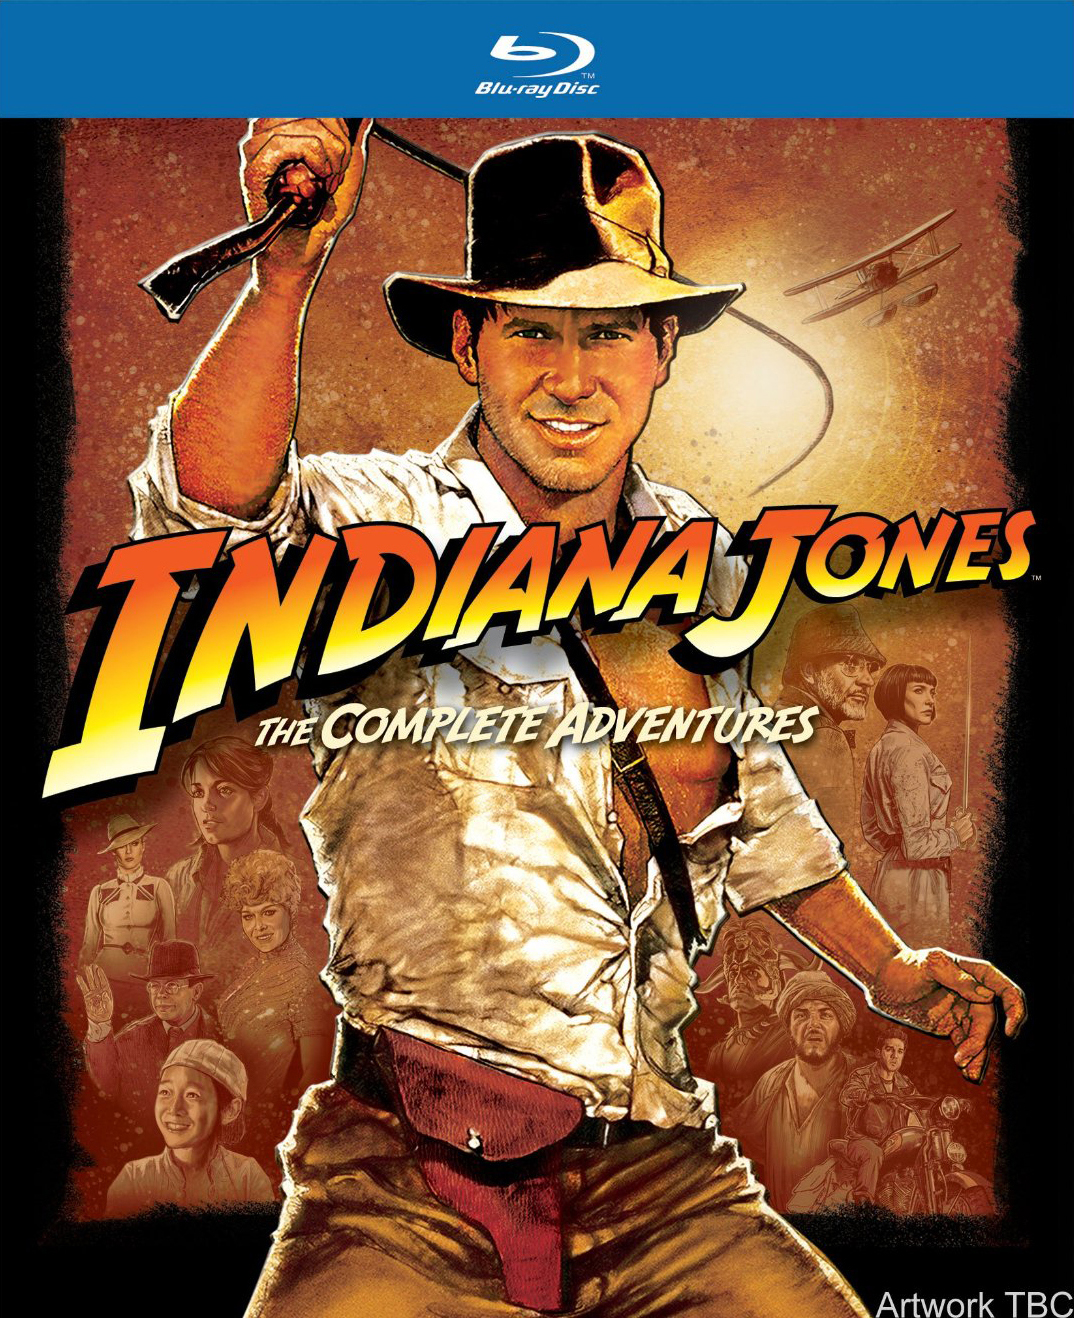 a comparison between the indiana jones epic and king arthur legends King arthur first reviews: 'an monty python and the holy grail look like a work of rigorous historical scholarship by comparison it's epic indiana jones 5.